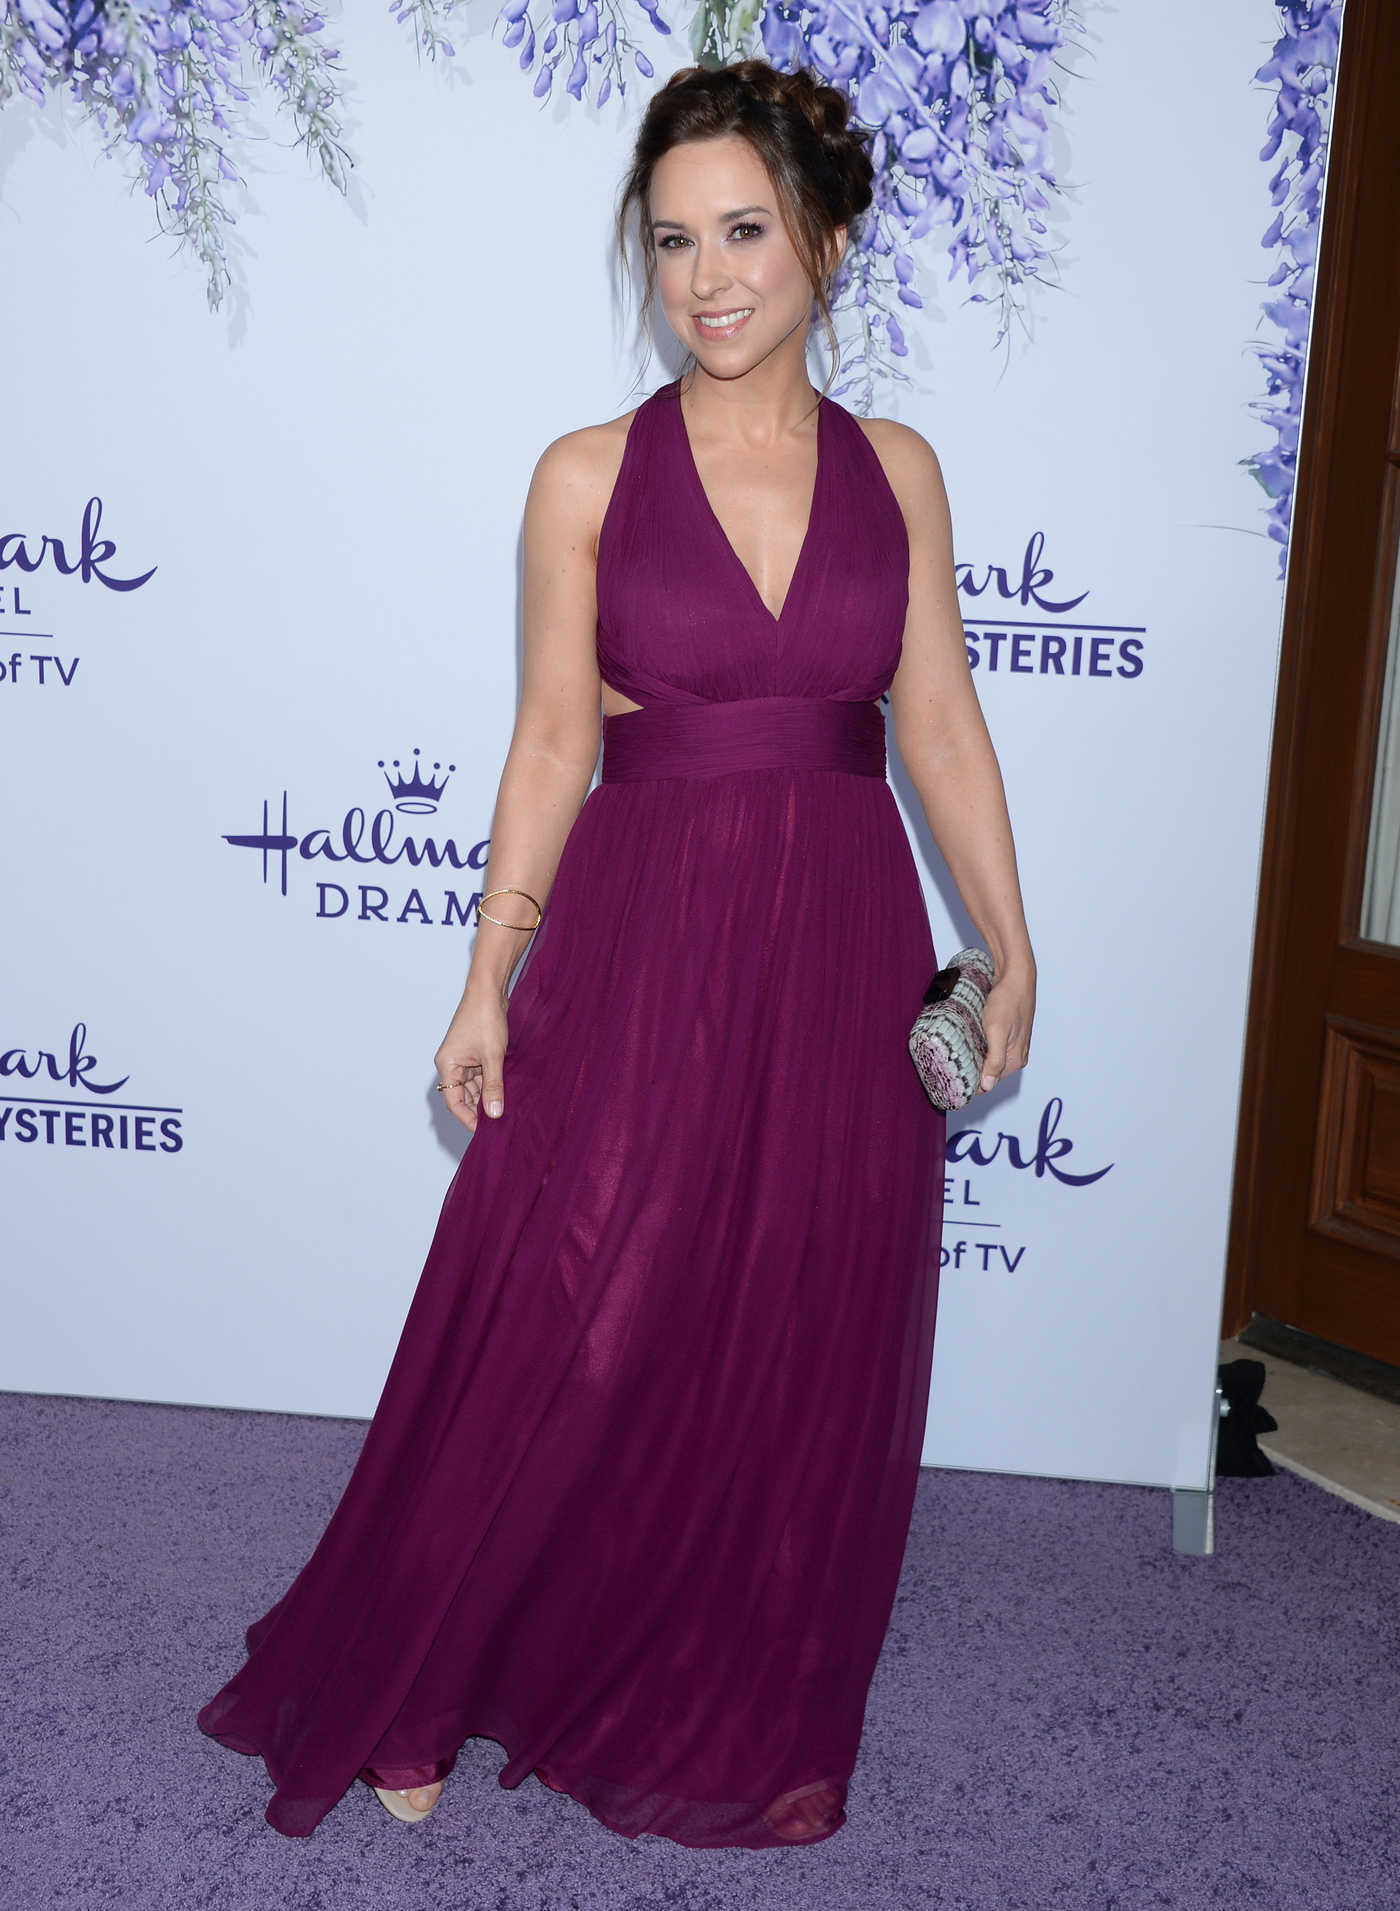 Lacey Chabert Attends Hallmark's Evening Gala TCA Summer Press Tour in LA 07/26/2018